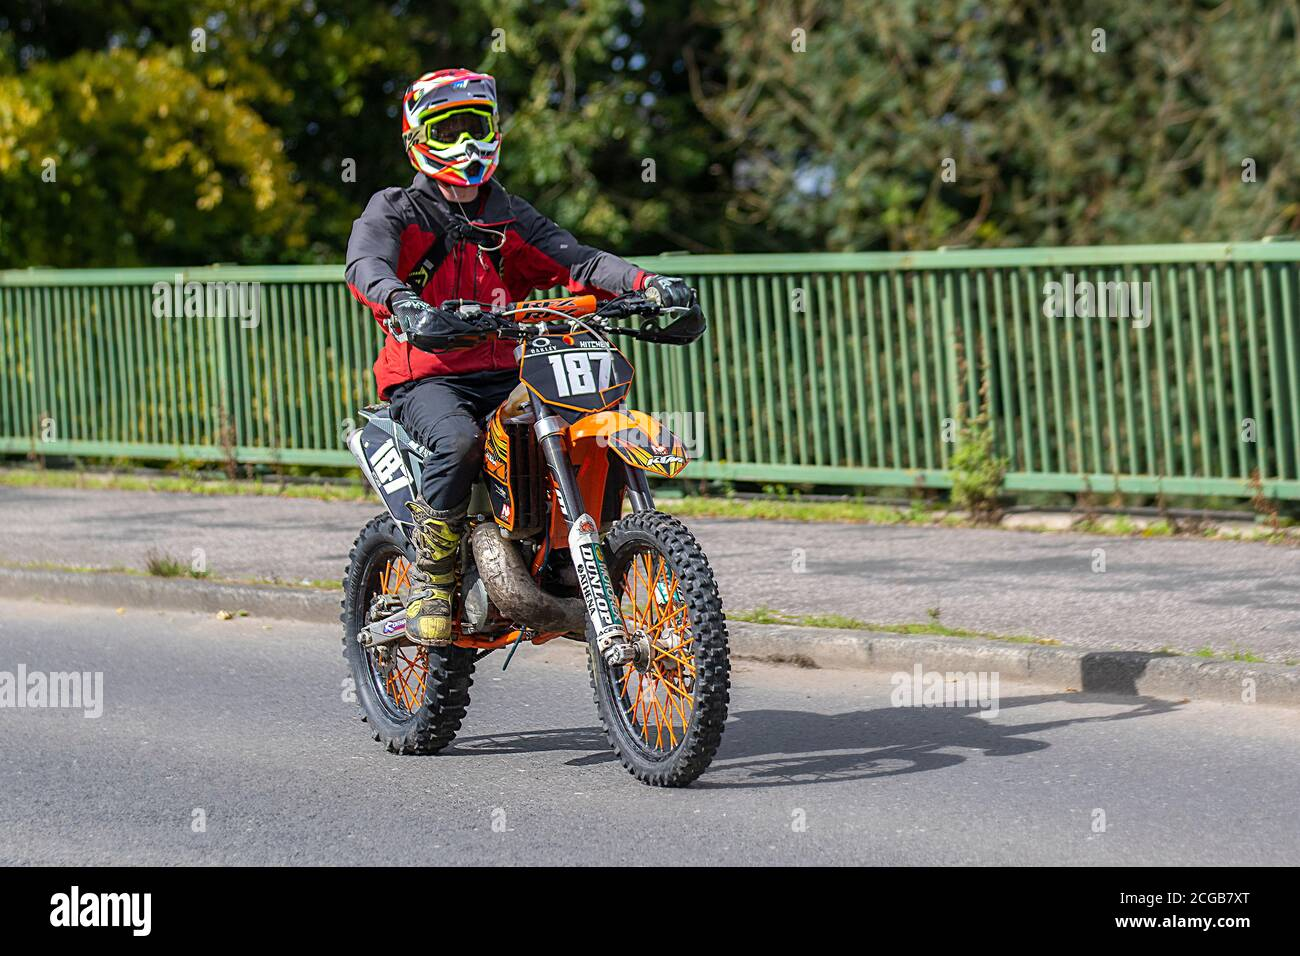 Ktm Dirt Bike High Resolution Stock Photography And Images Alamy